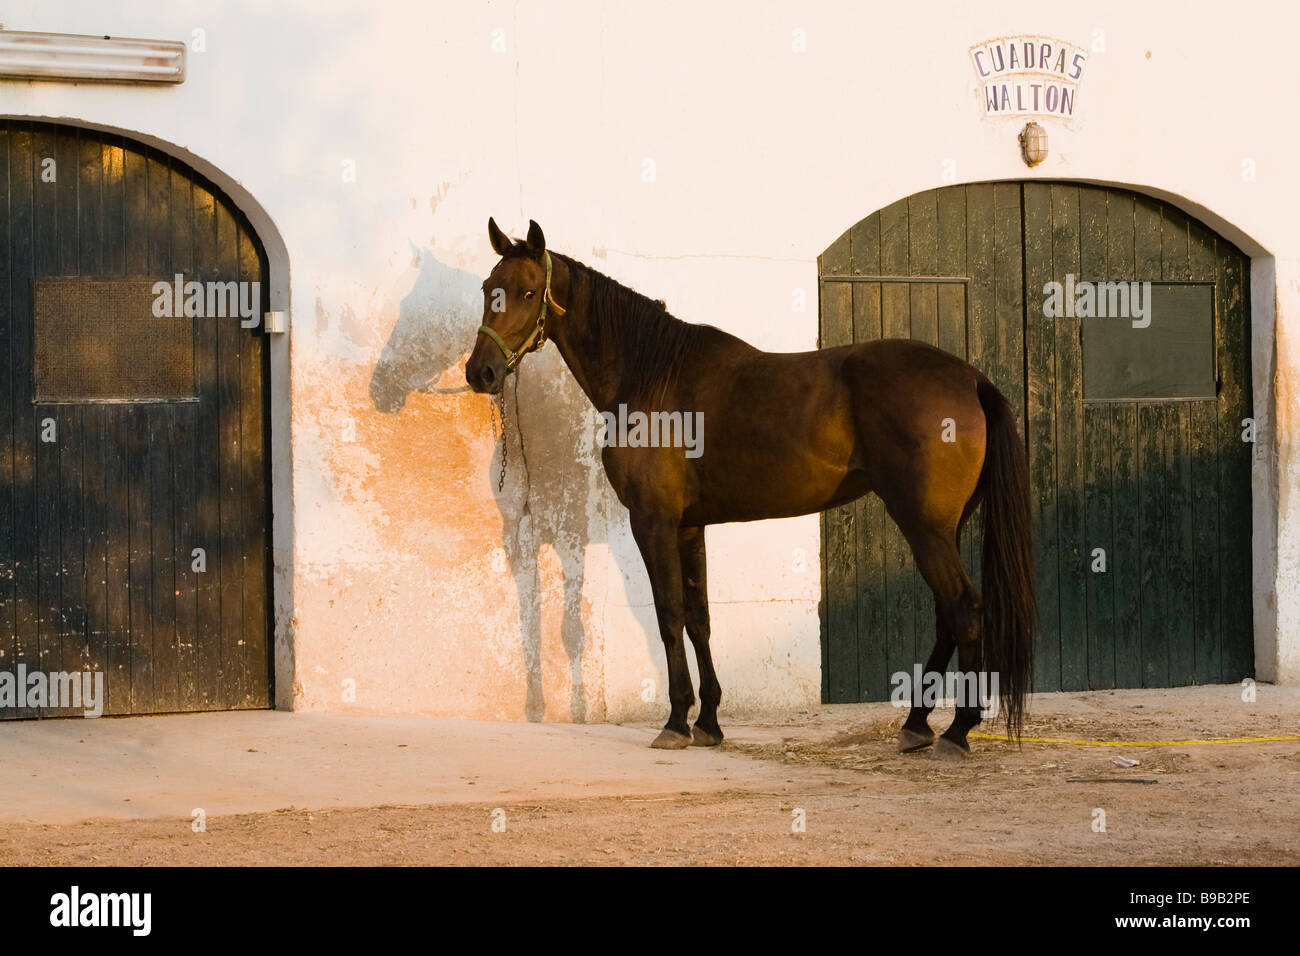 tethered horse at stables - Stock Image